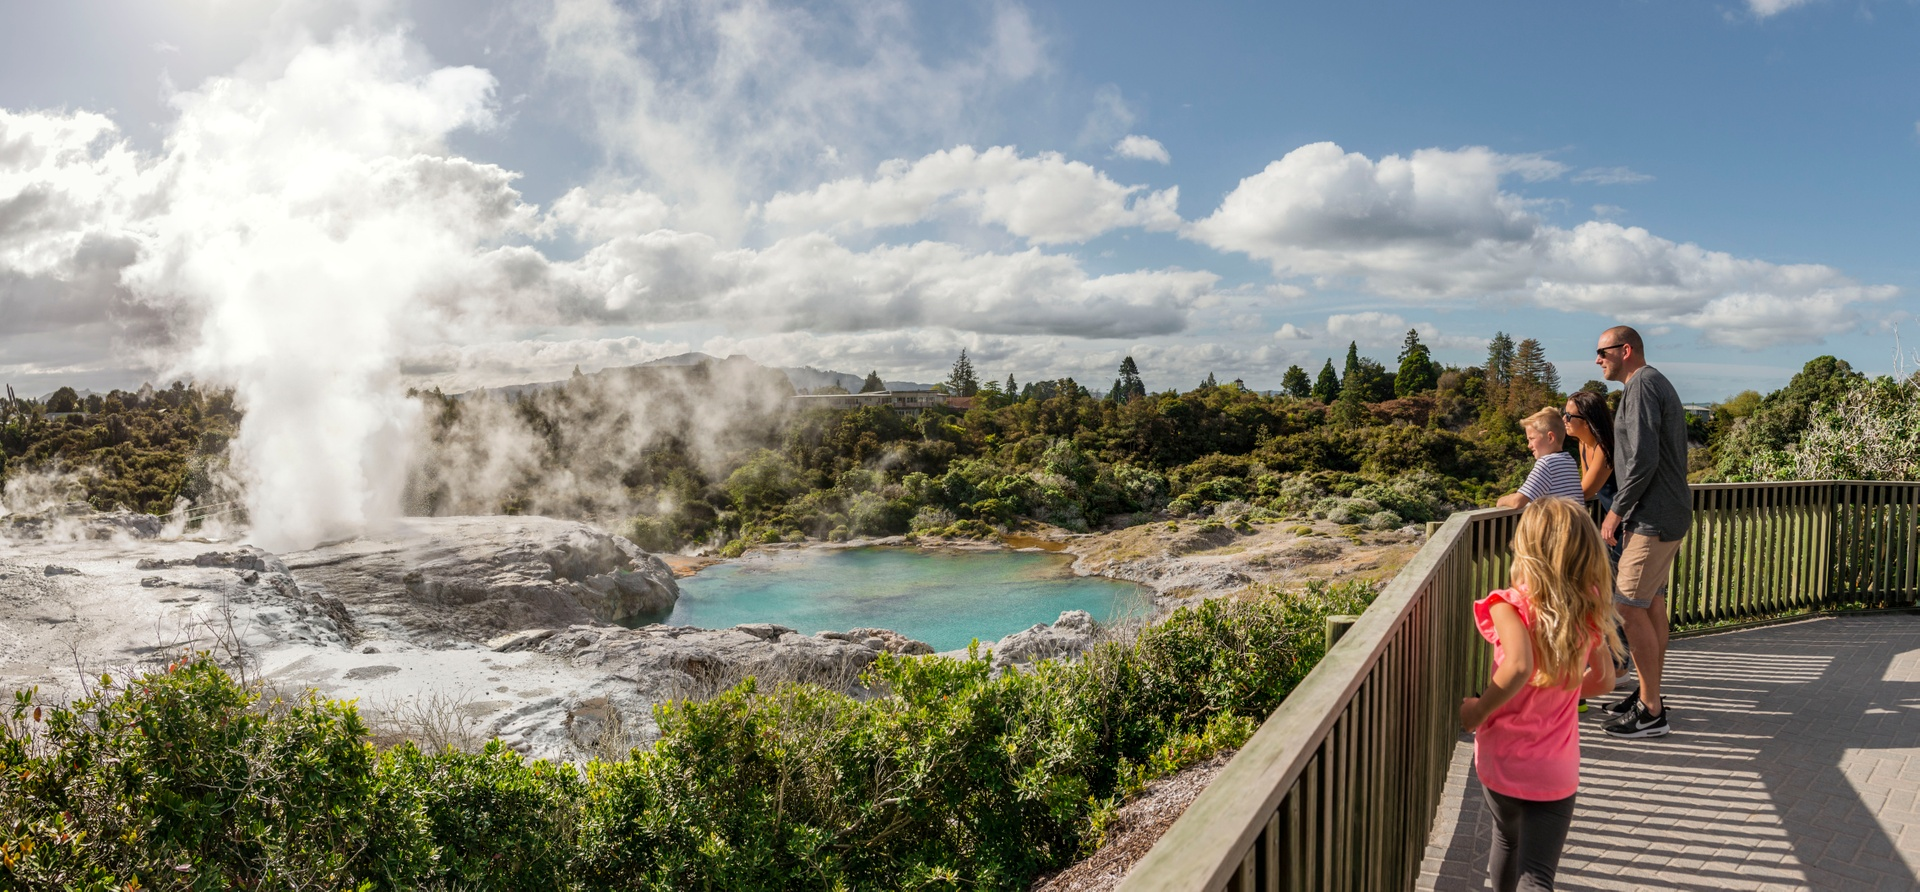 New Zealand holidays are great value for money